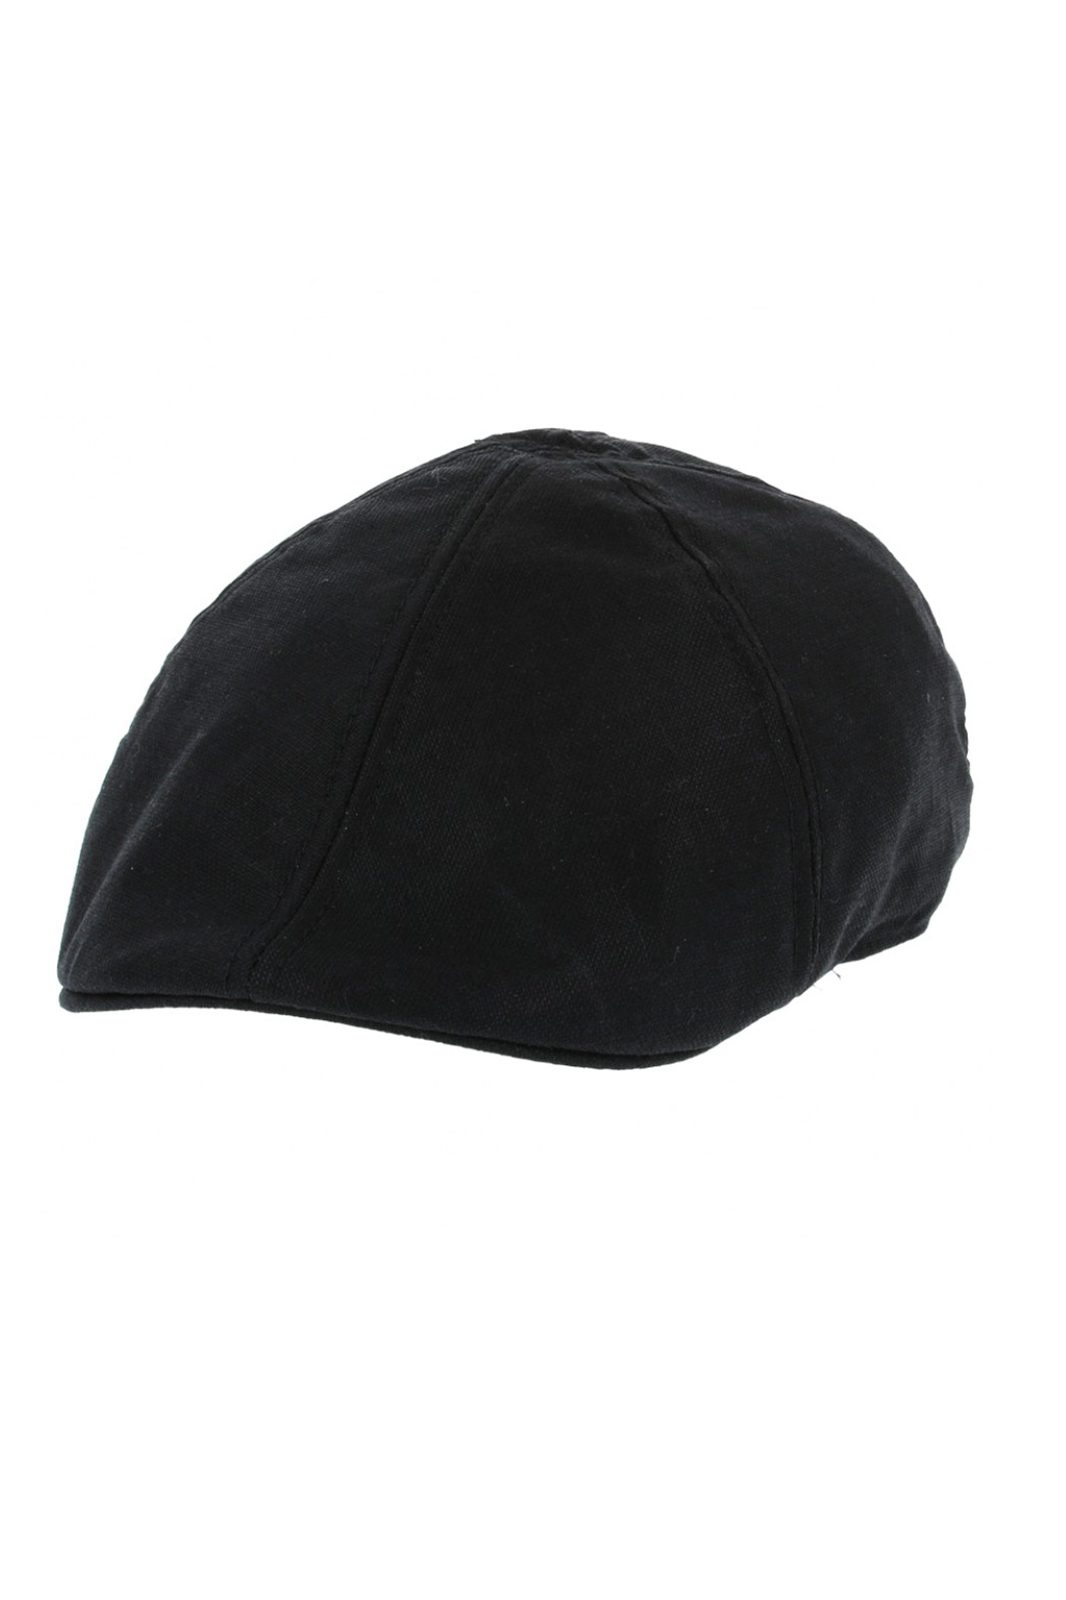 Linen Six Panel Flat Cap Black